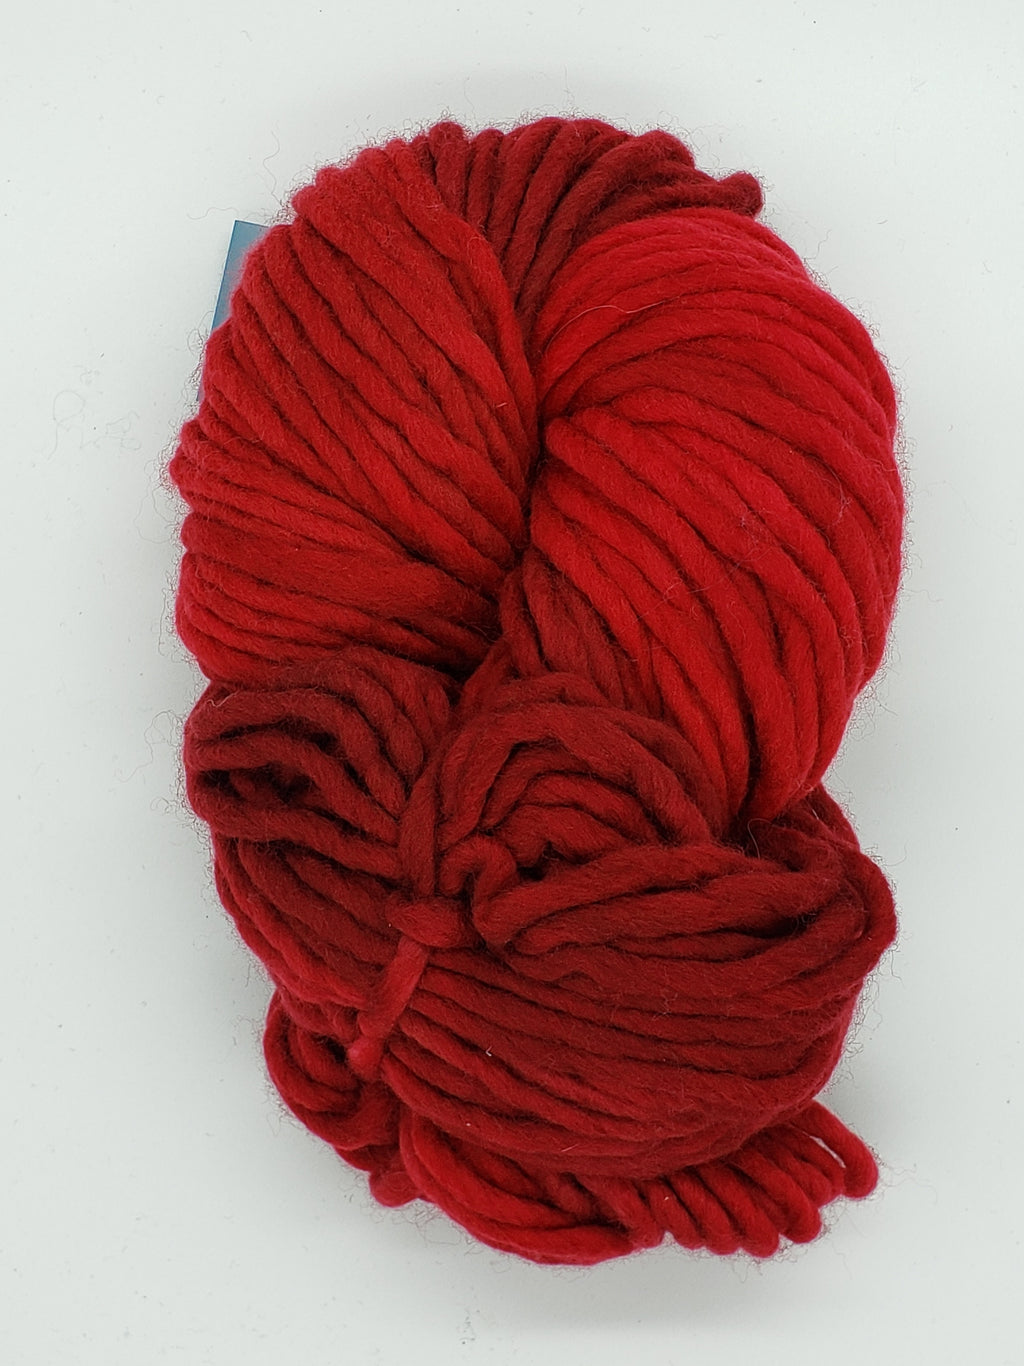 Flouf - RUBY - 100% Merino Chunky - Fleece Artist Hand Dyed Yarn - Shades of Red